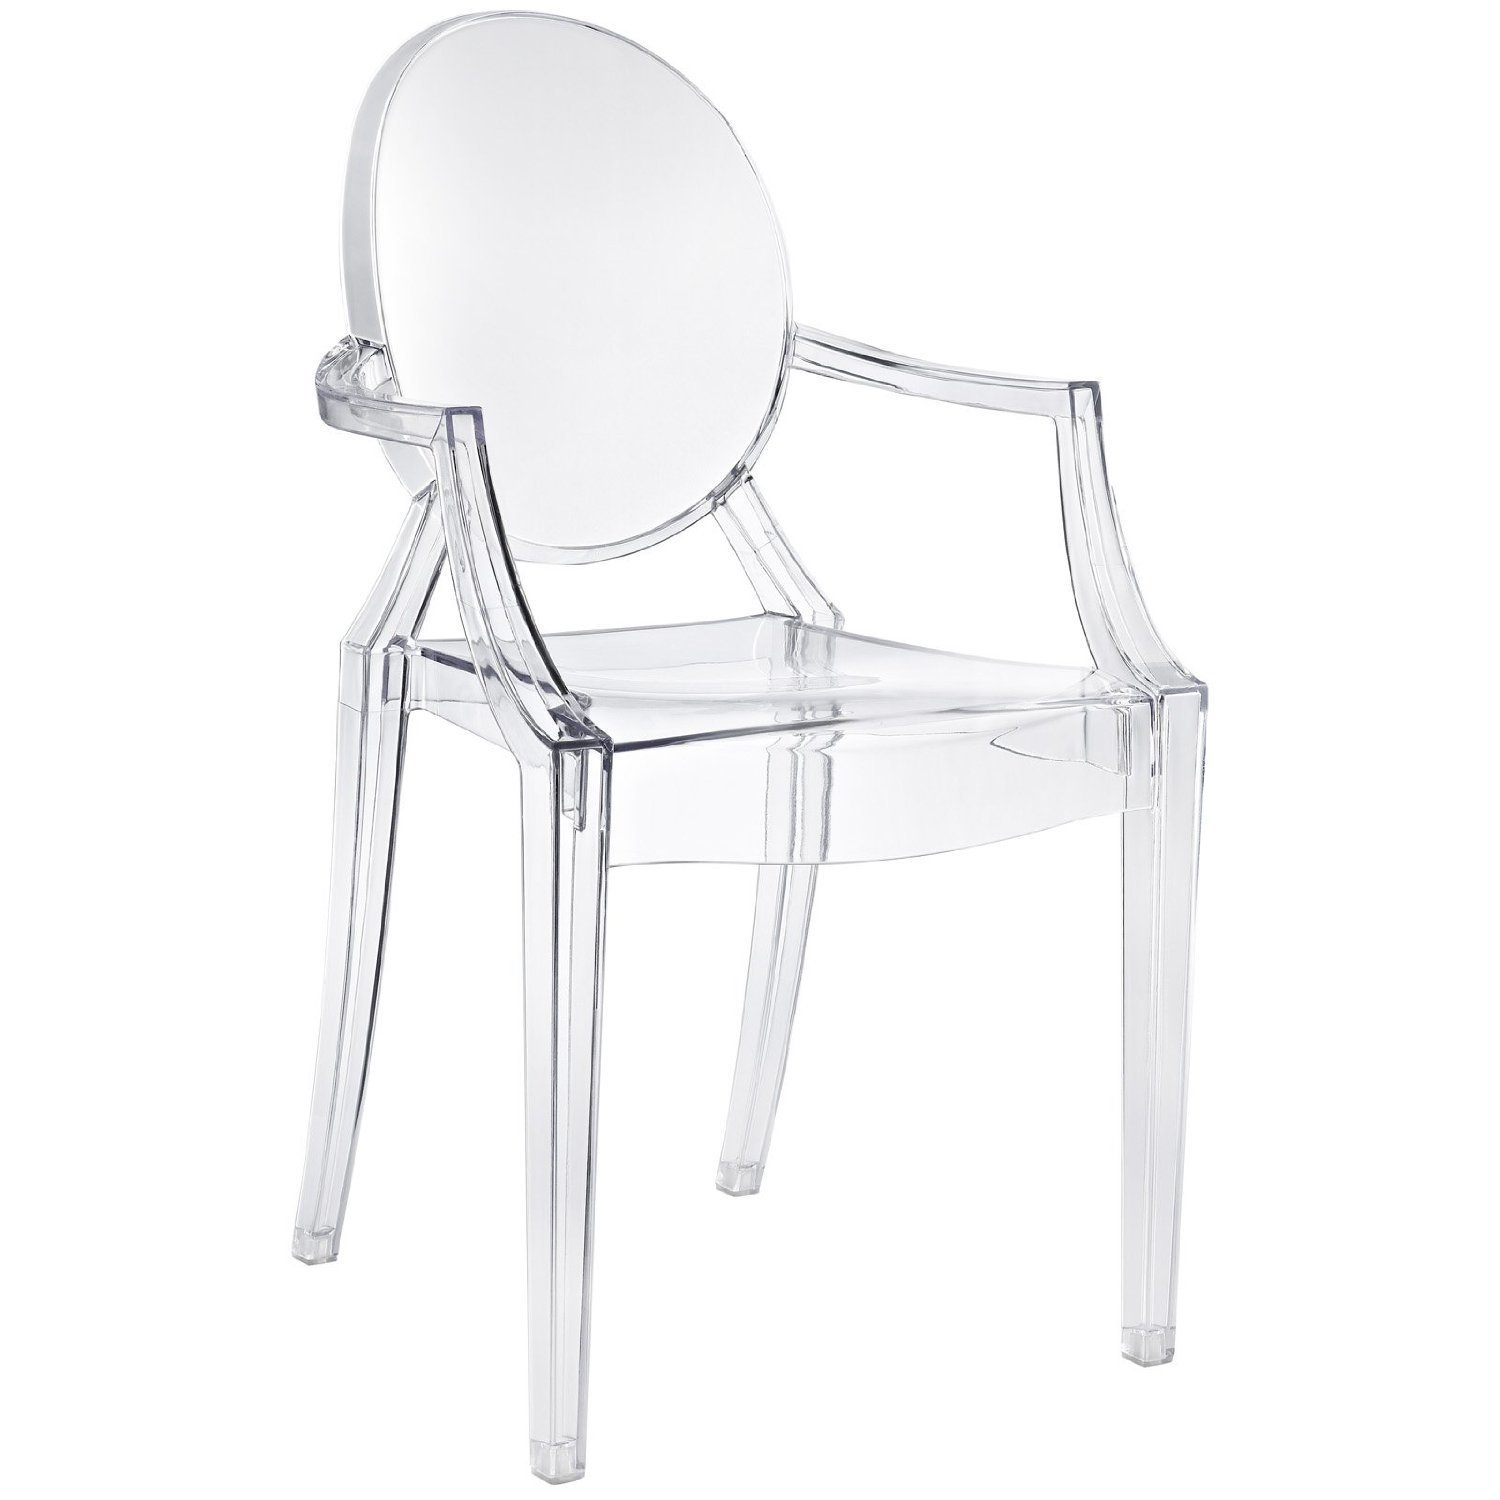 Louis Ghost Chair -- Kartell (2002)  This iconic seat shows Starck playing with form and material, recasting the royal Louis XV chair concept with translucent, injection-molded polycarbonate. More than a million of these chairs have been sold.  Iconic Philippe Starck Designs  by Patrick Sisson